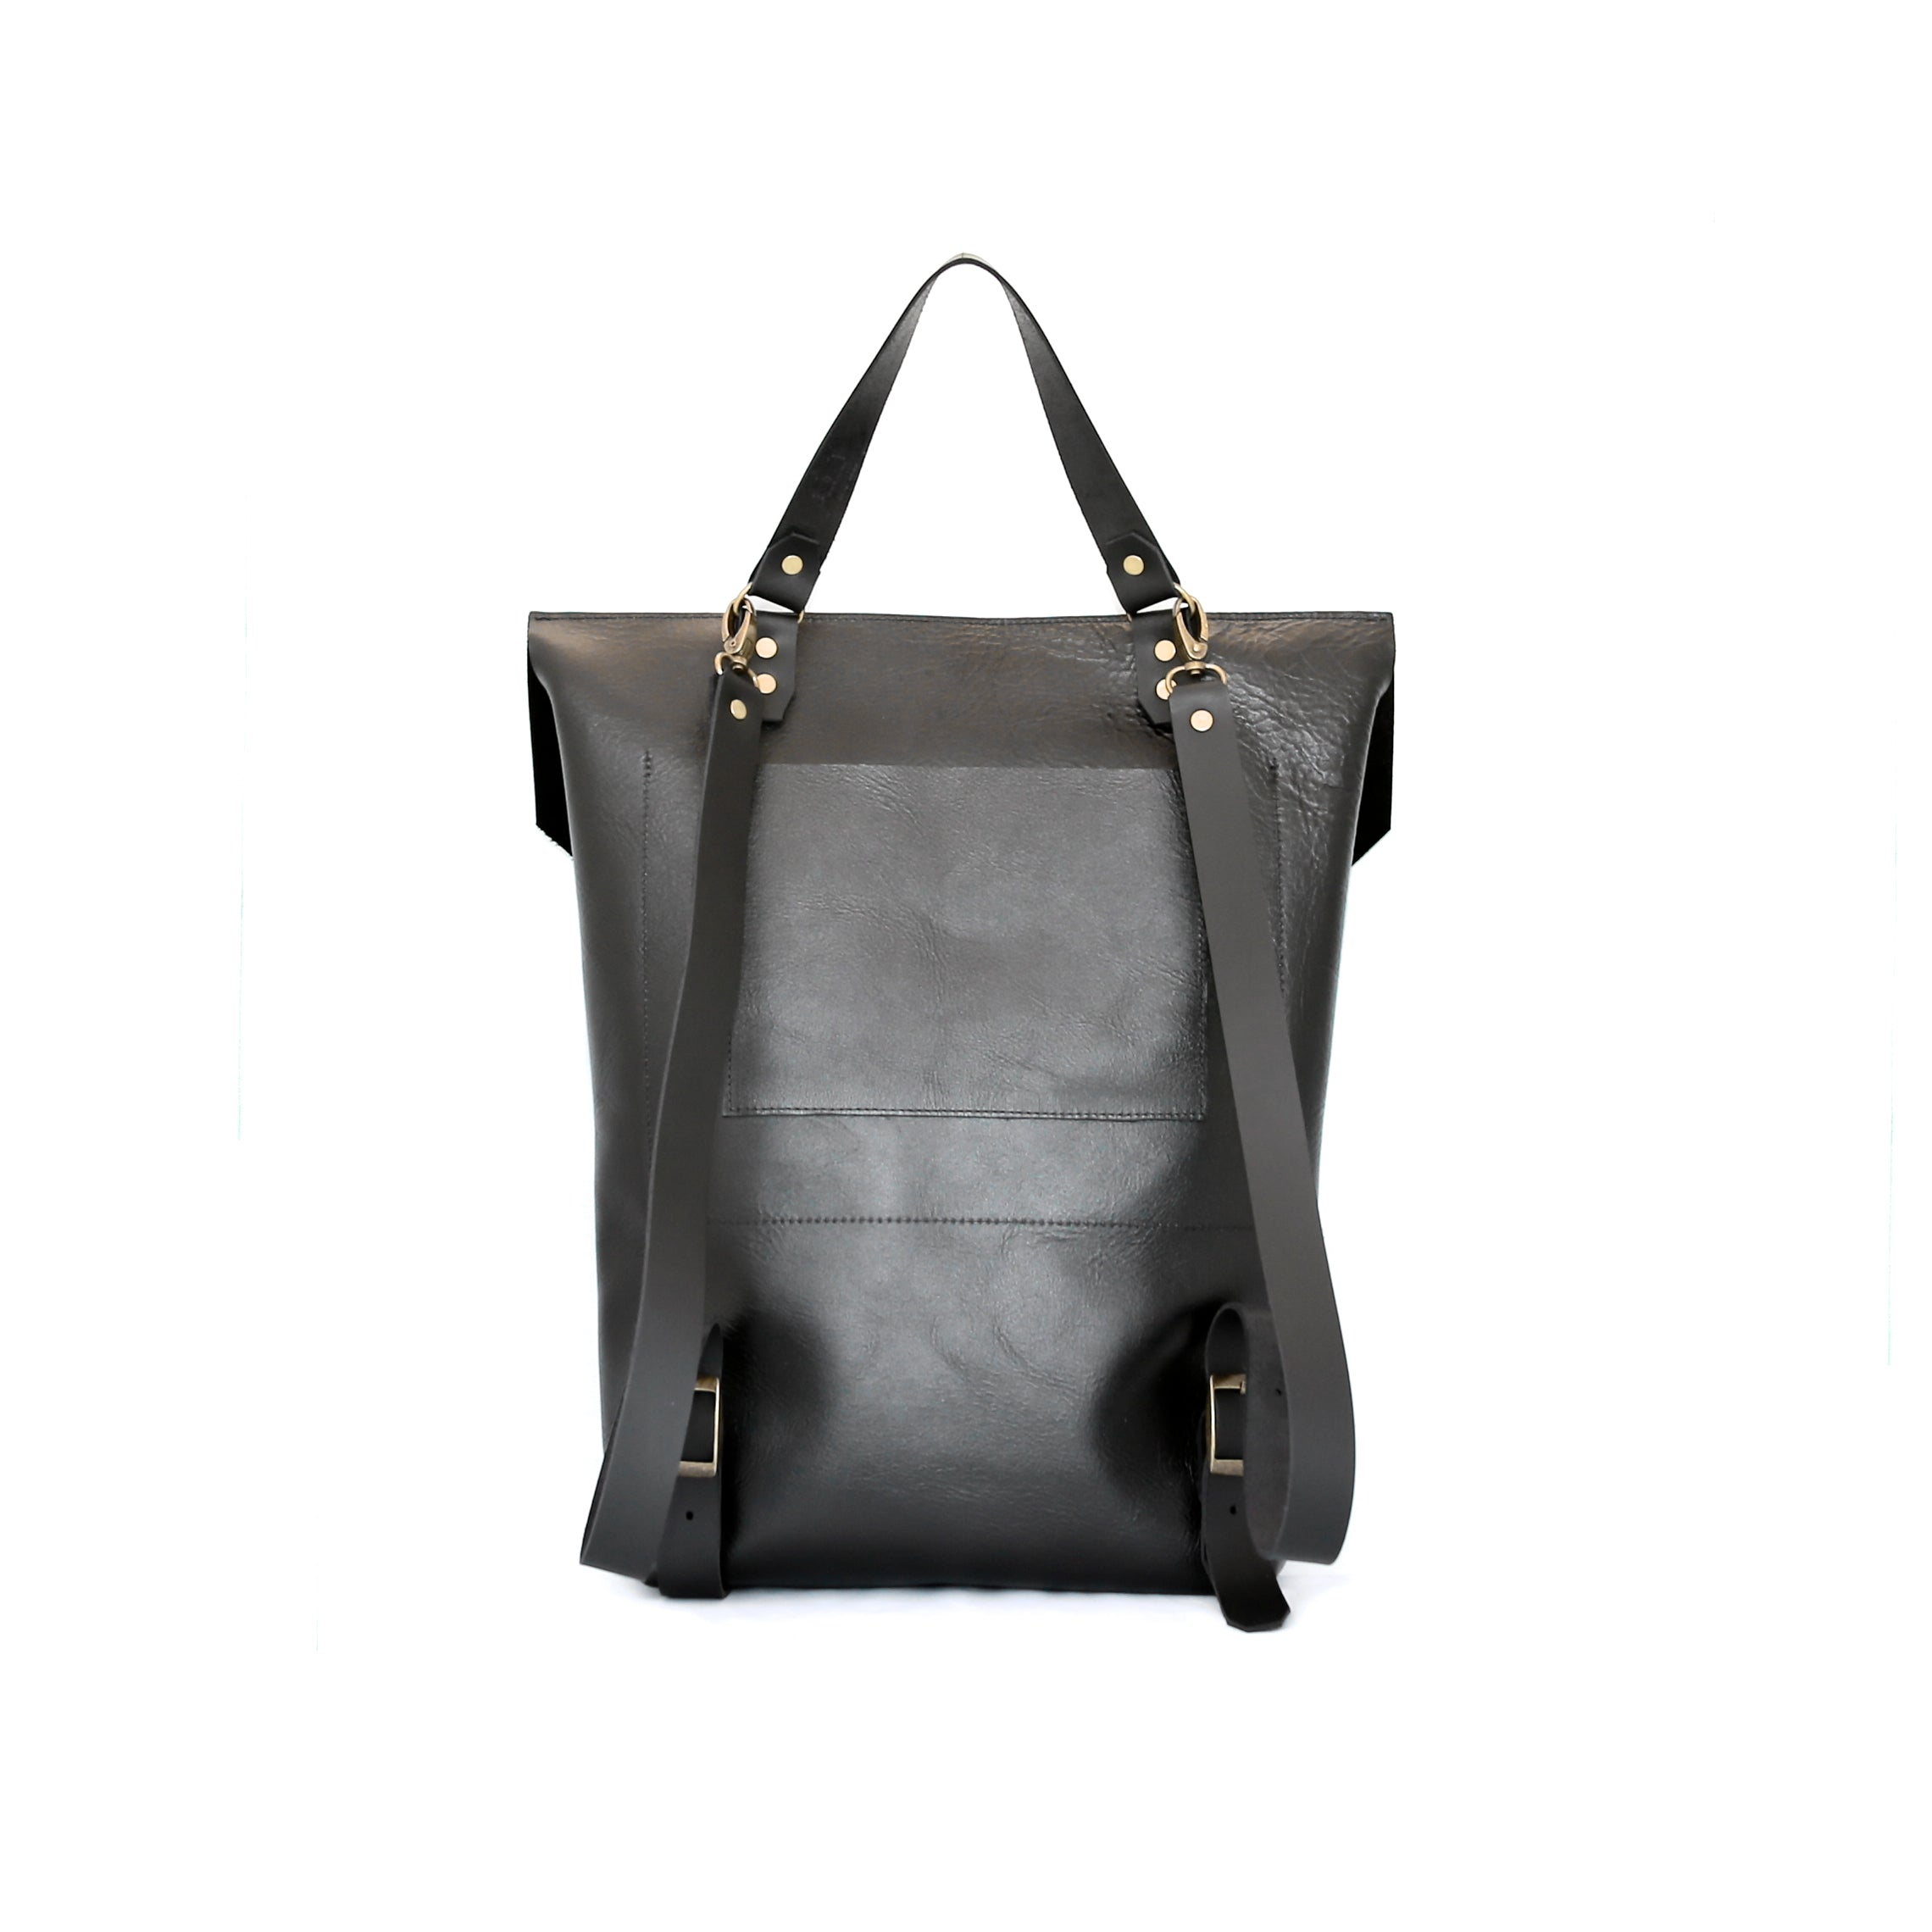 The Back Pack in Matte Black Leather - handcrafted by Market Canvas Leather in Tofino, BC, Canada